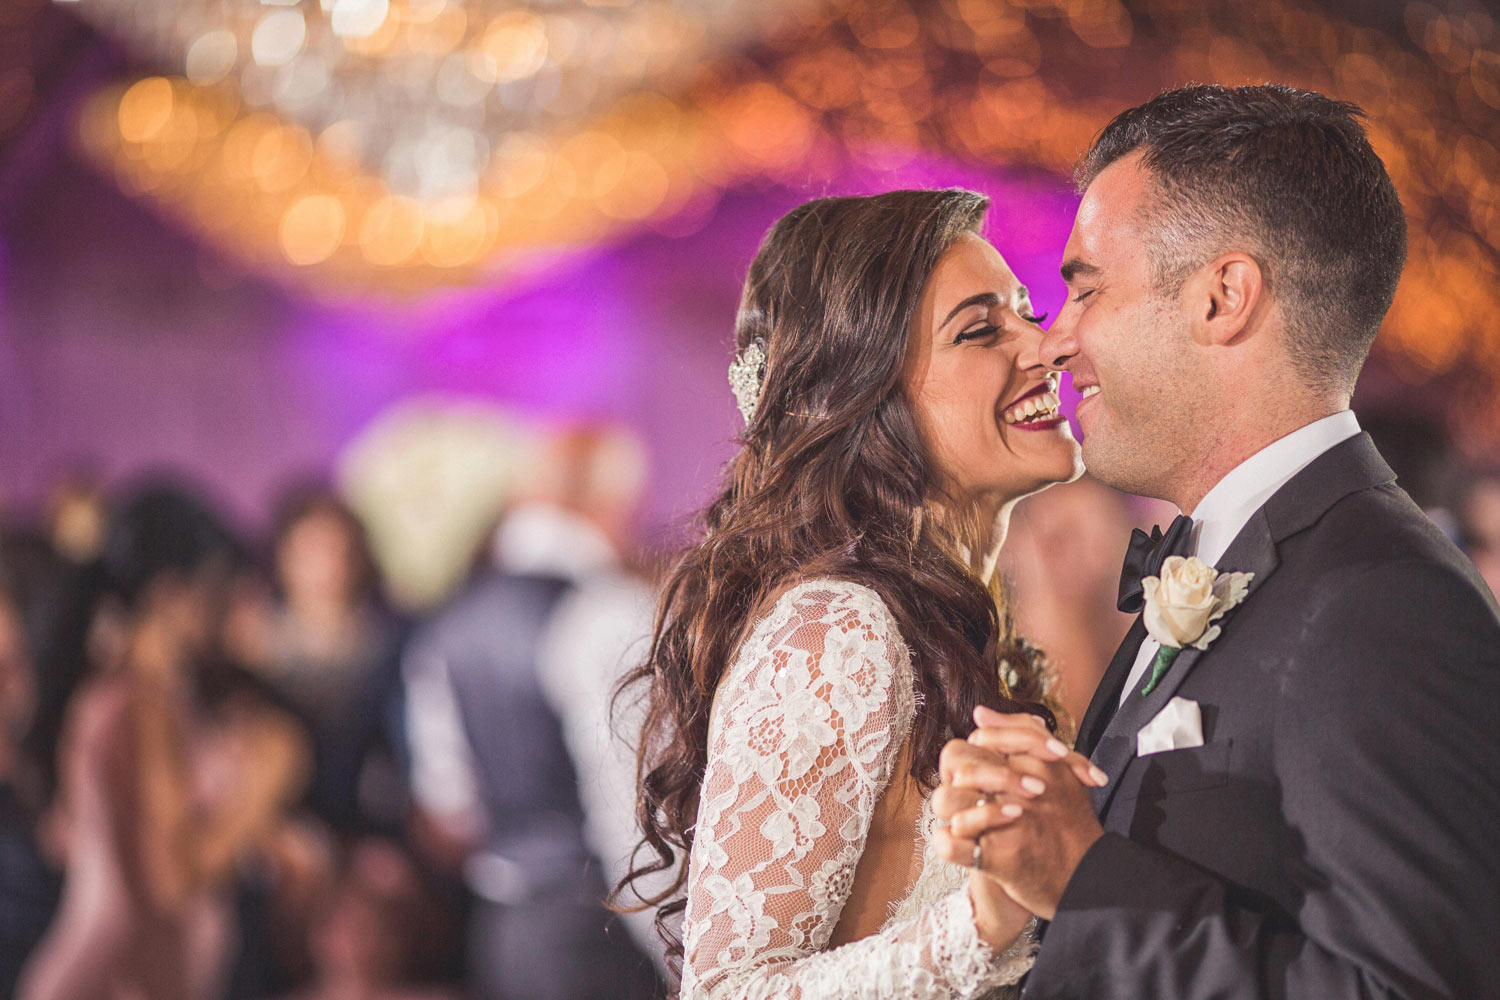 Capturing wedding moments are important especially during the bride and groom first wedding dance. El Caribe Country Club Caterers, Brooklyn, NY